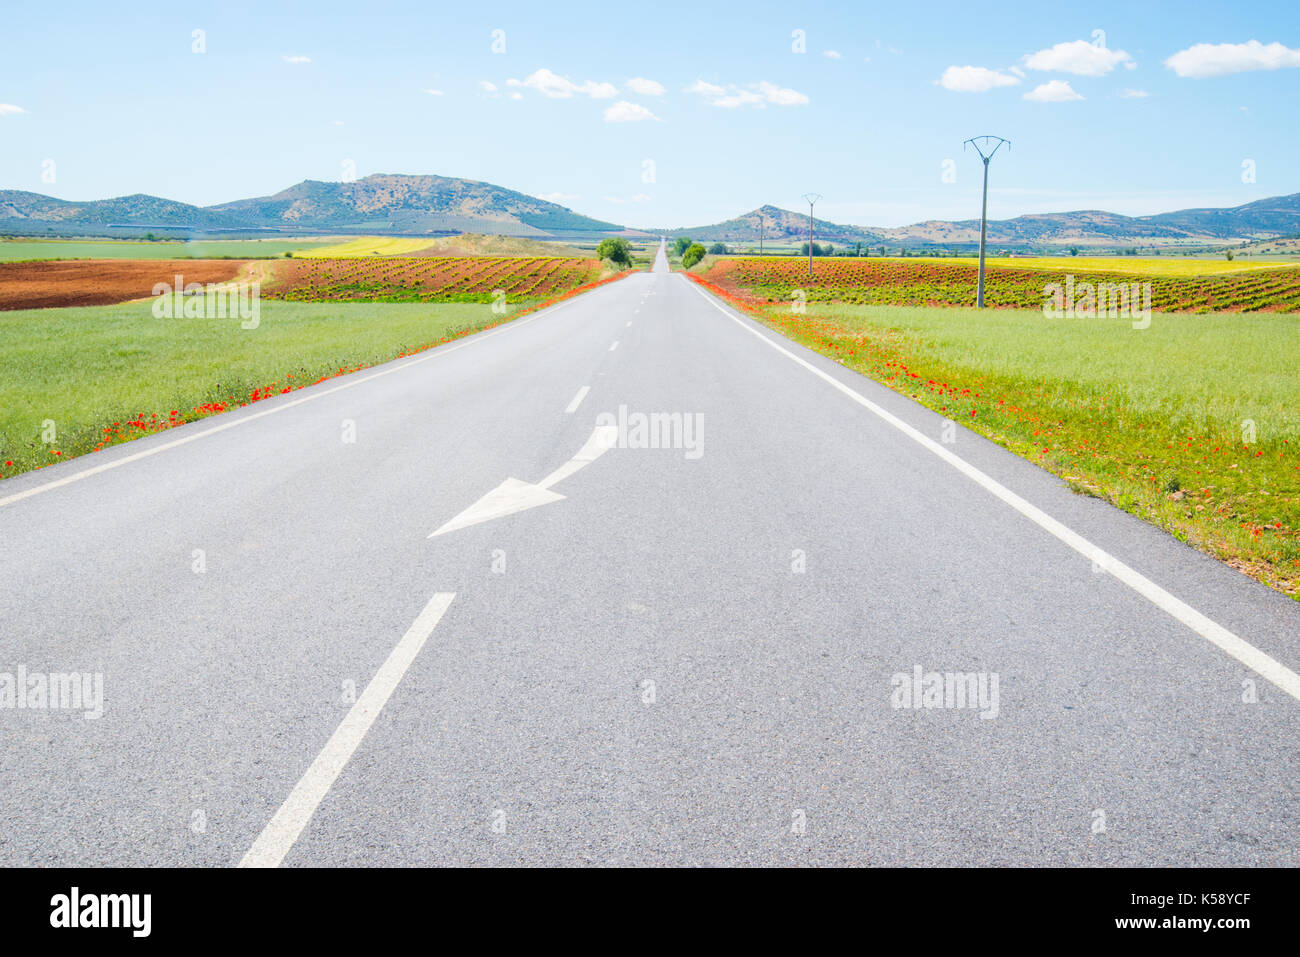 Road and cultivation fields. Fuente El Fresno, Ciudad Real province, Castilla La Mancha, Spain. Stock Photo